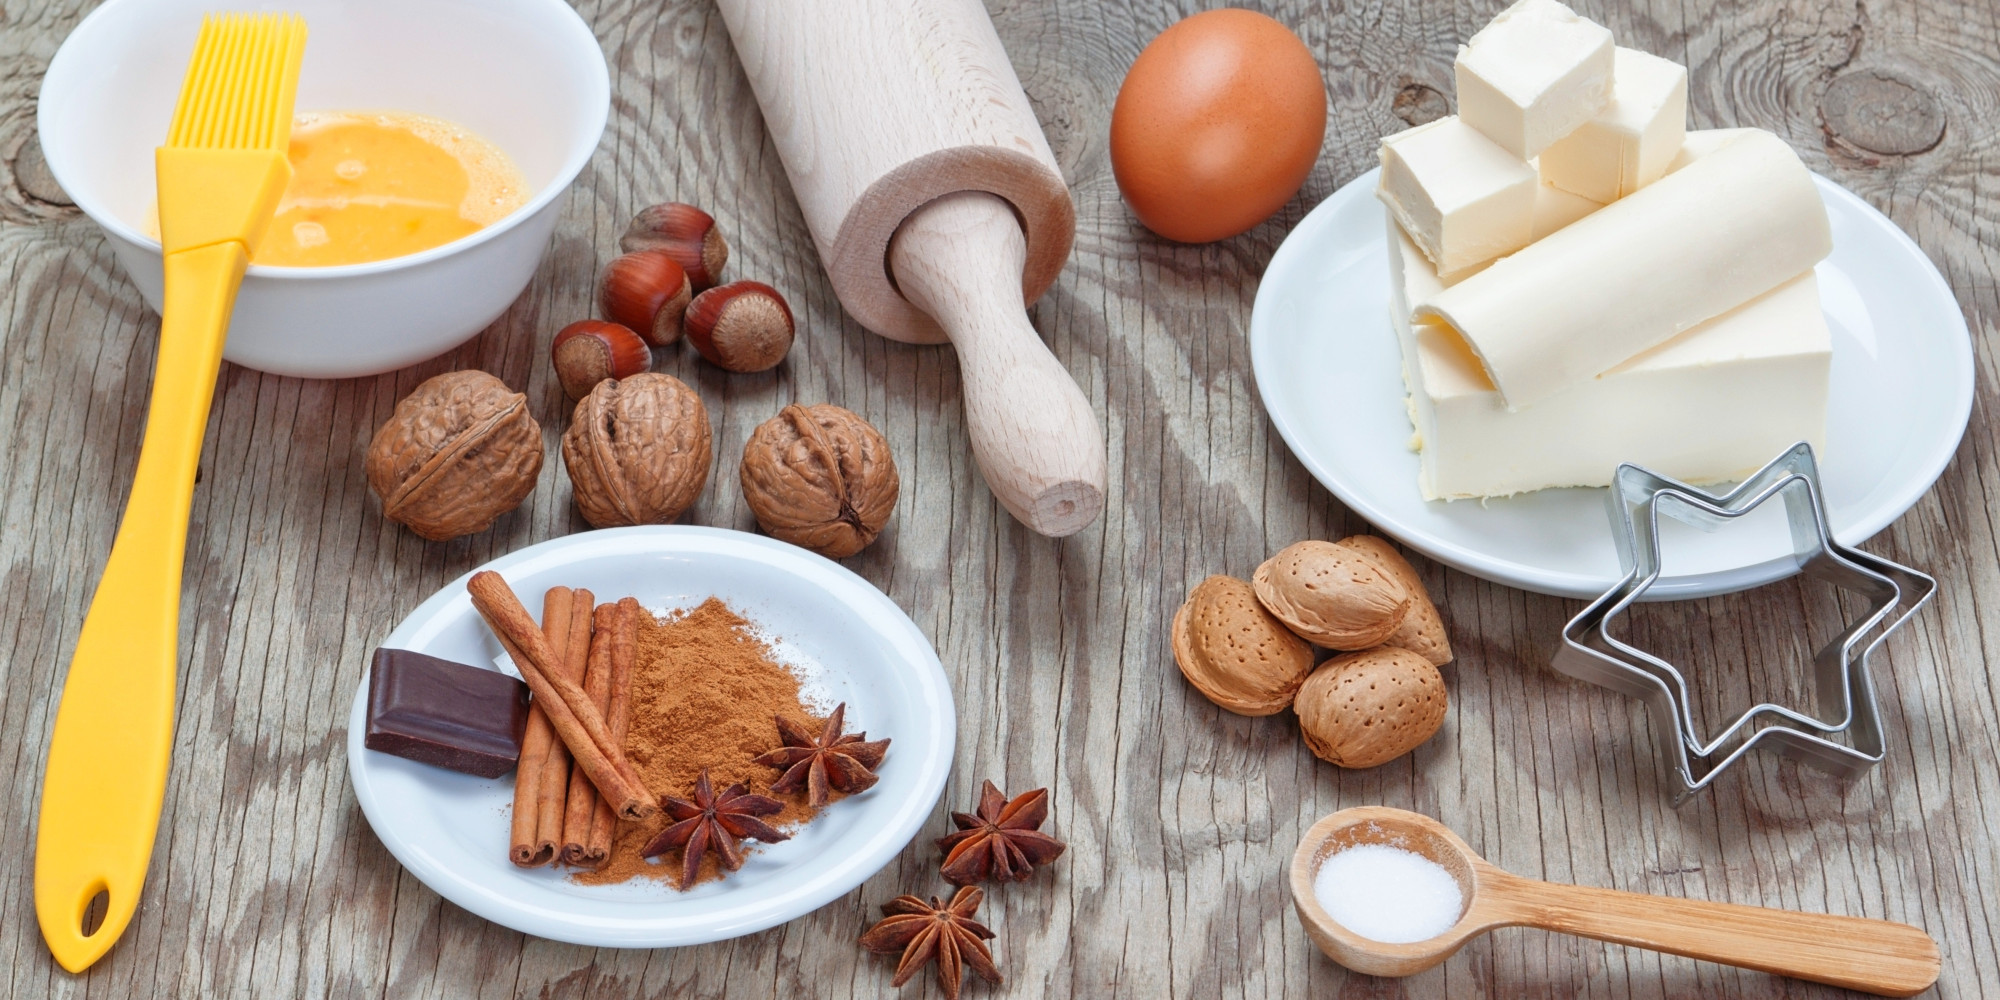 Baking Supplies: How To Stock Your Pantry For Holiday Baking